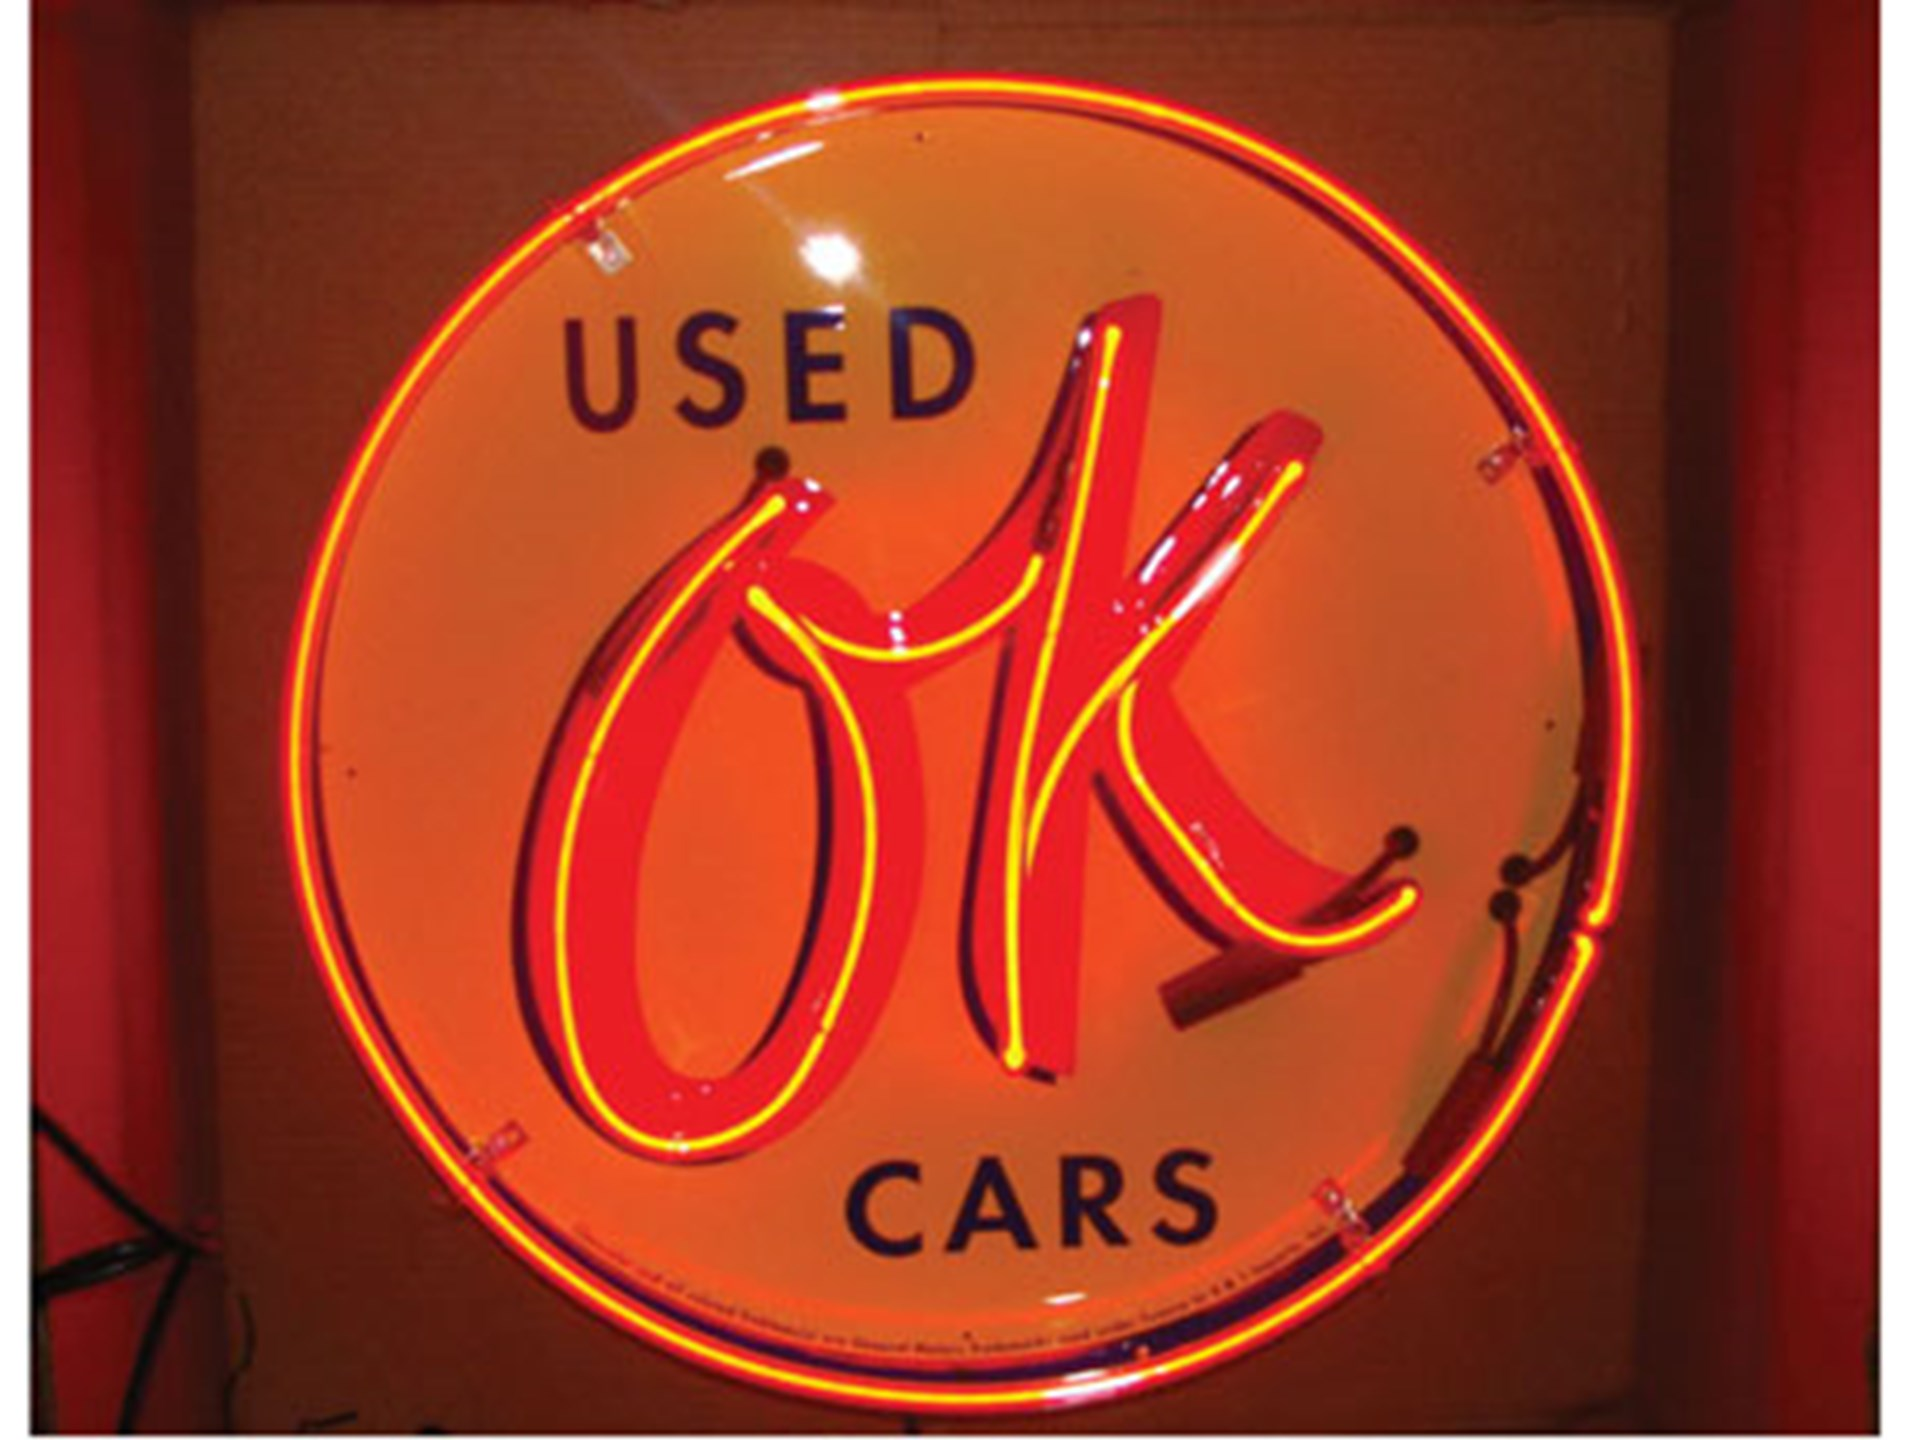 RM Sotheby's - OK Used Cars Neon Sign (23 Inch Round with Canister